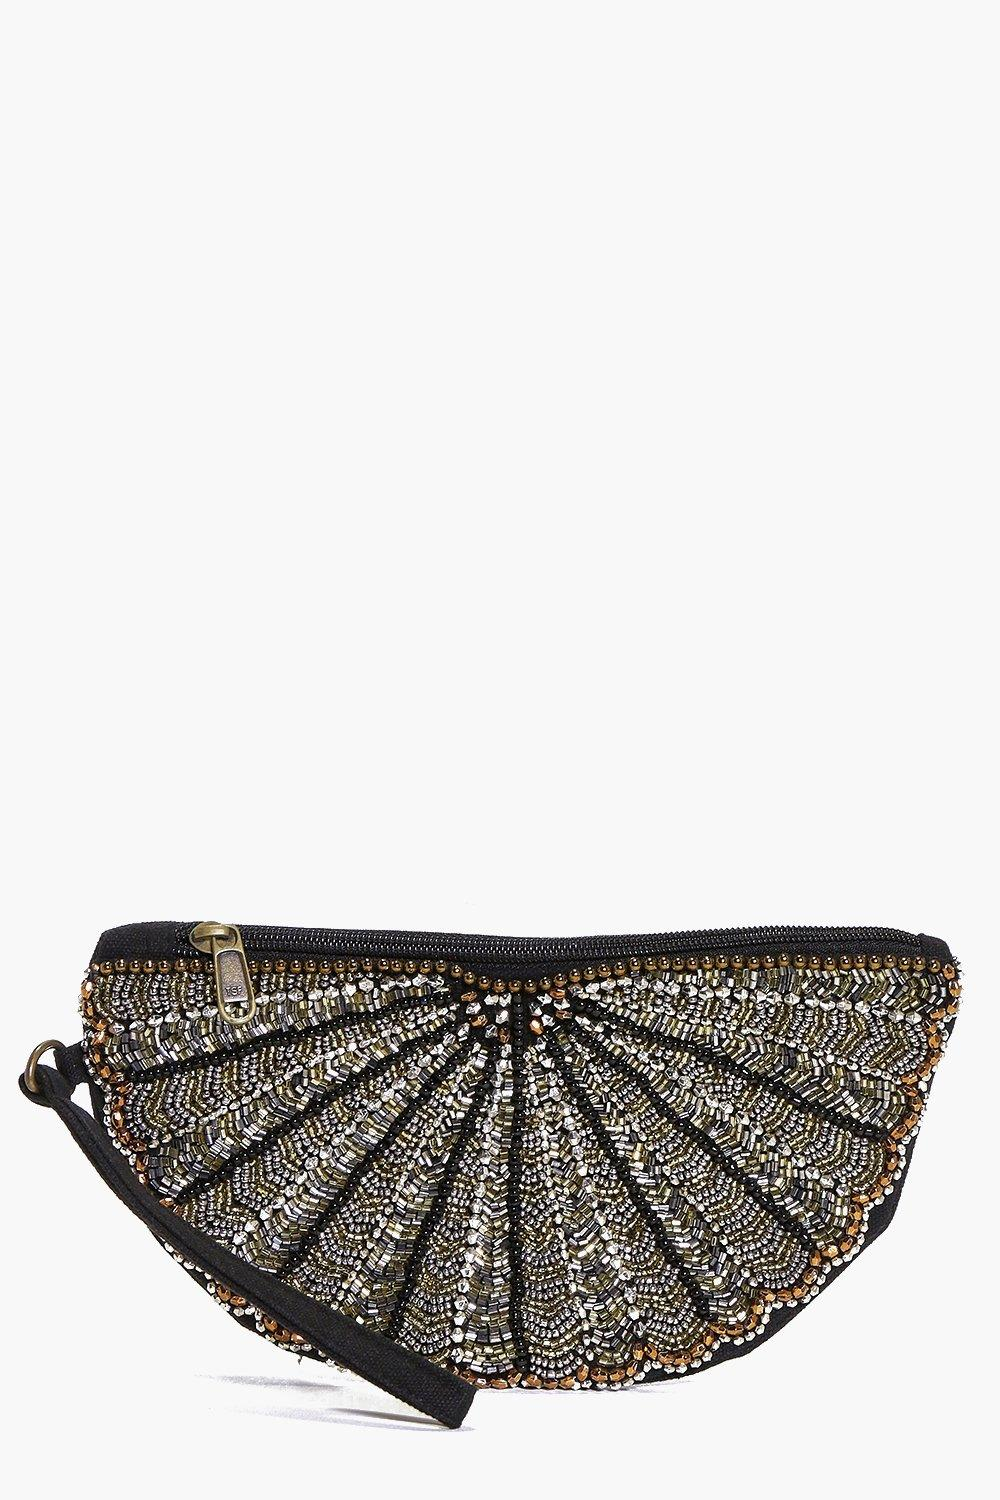 Embellished Half Moon Clutch Bag black